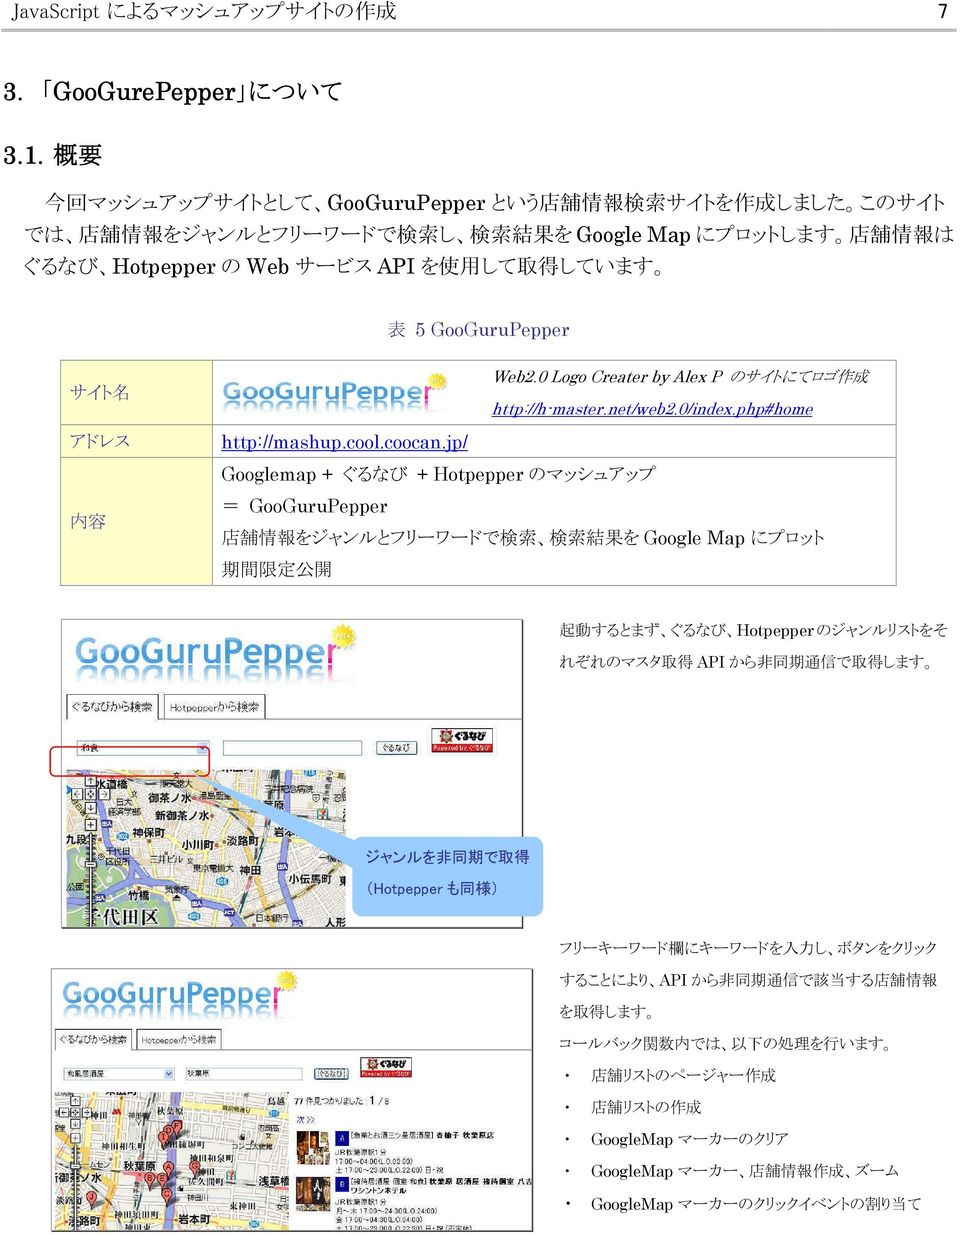 GooGuruPepper サイト 名 アドレス 内 容 Web2.0 Logo Creater by Alex P のサイトにてロゴ 作 成 http://h-master.net/web2.0/index.php#home http://mashup.cool.coocan.